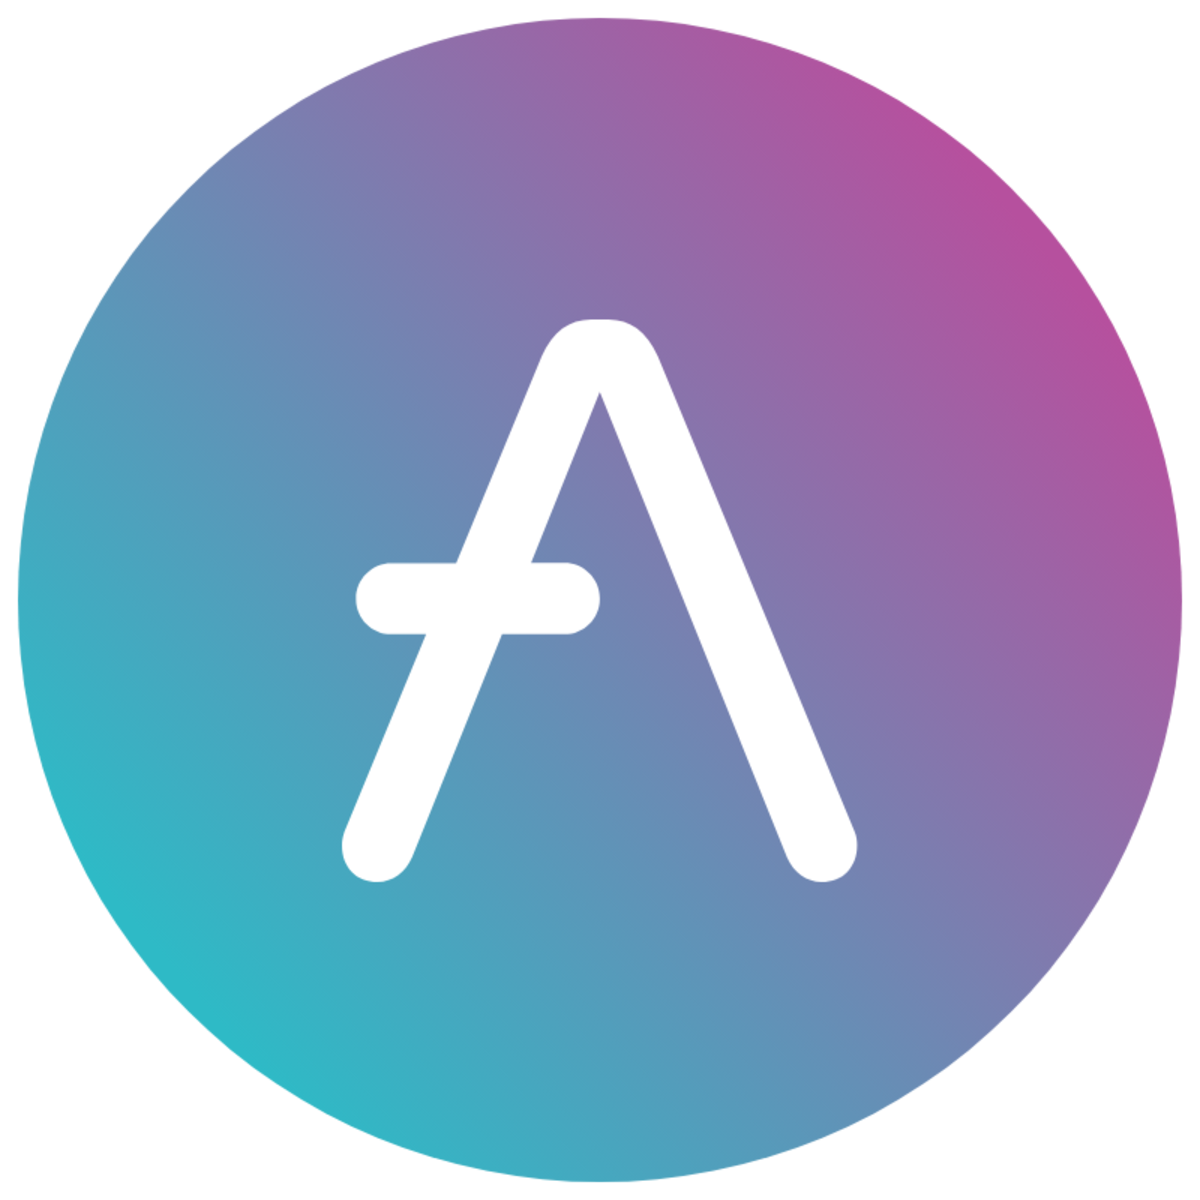 The Aave logo